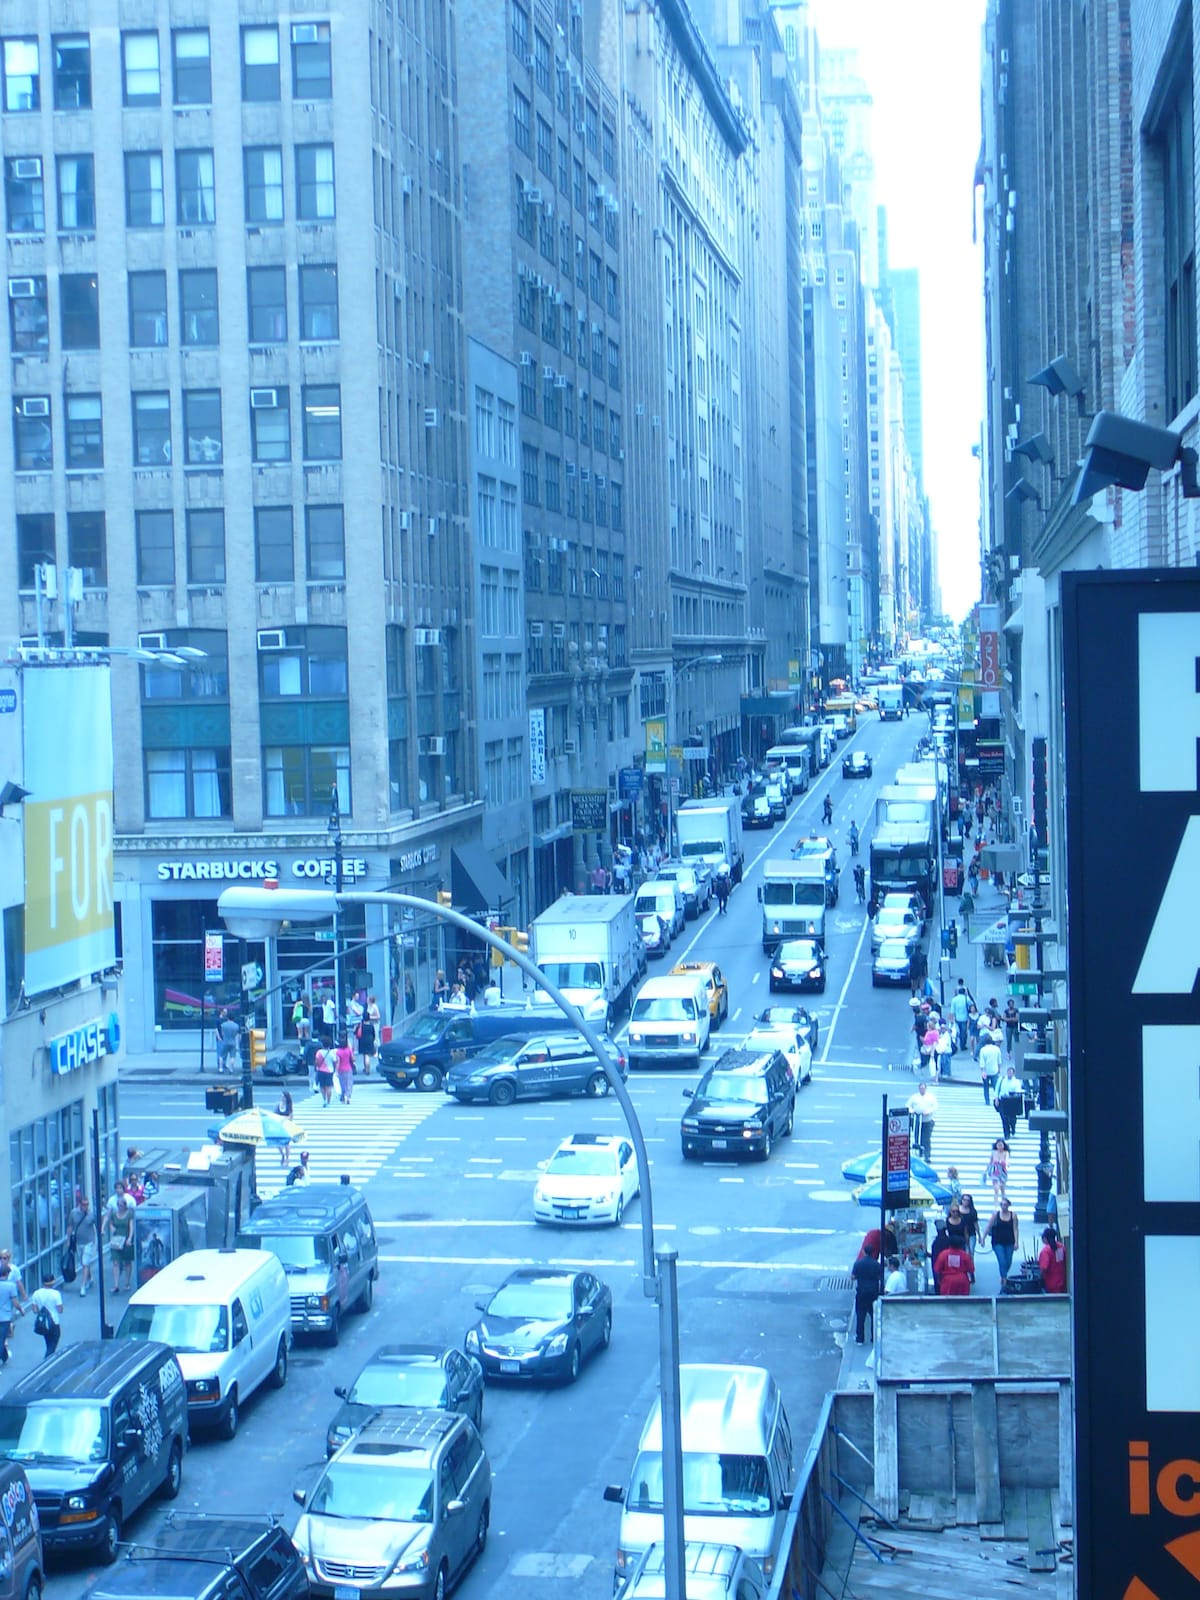 W. 39th st and 8th ave.